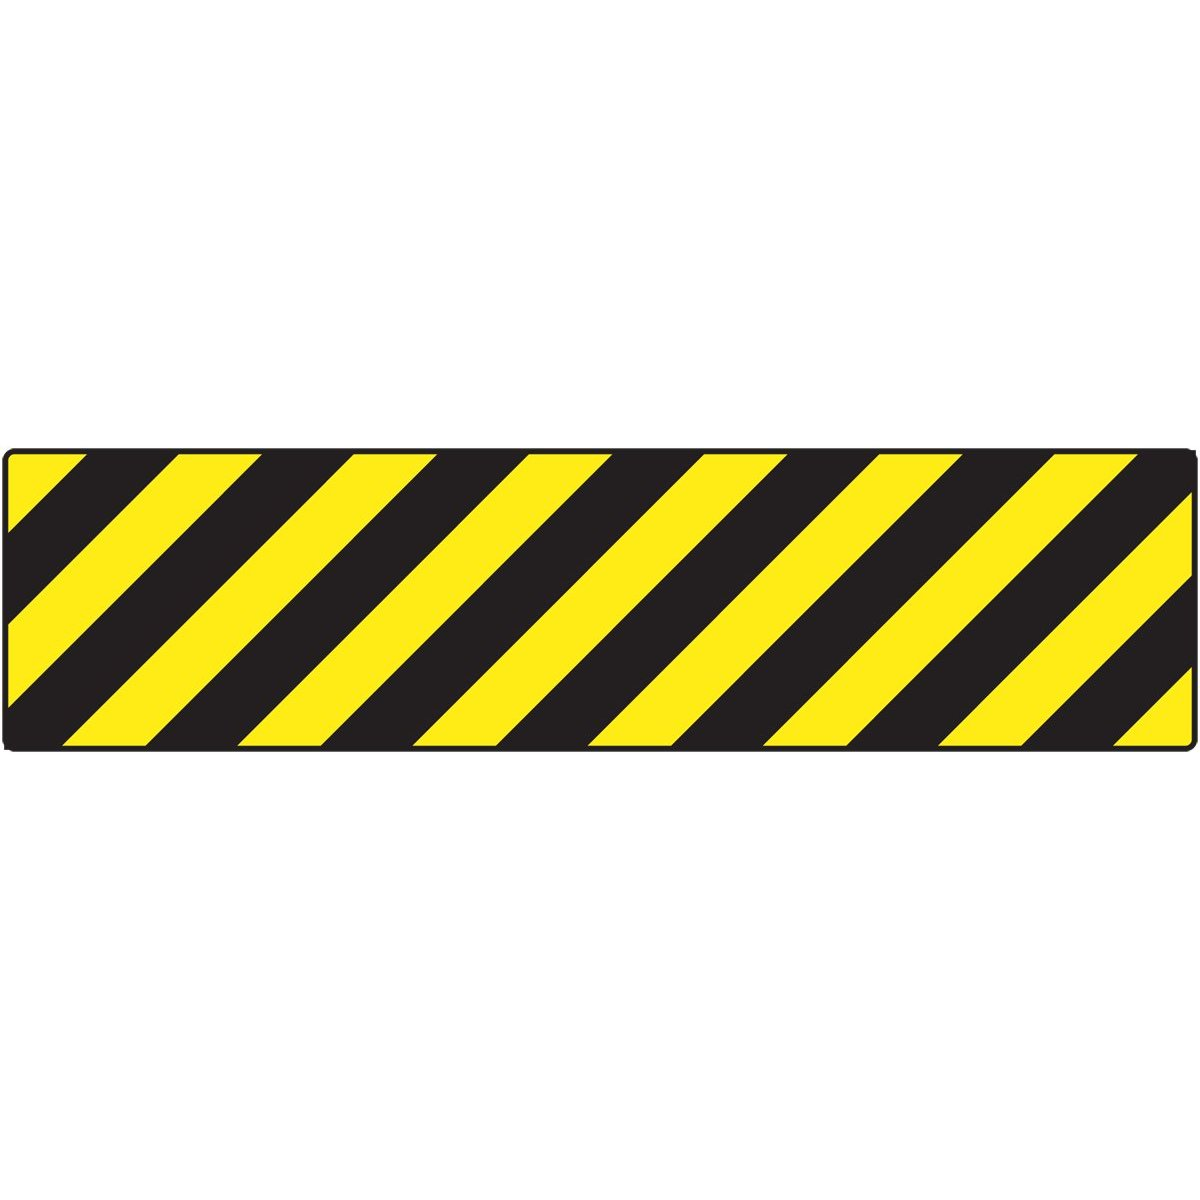 E shop additionally Warning Tape furthermore Hot Sign likewise Ts Bt07 in addition Movie Poster. on do not enter caution tape